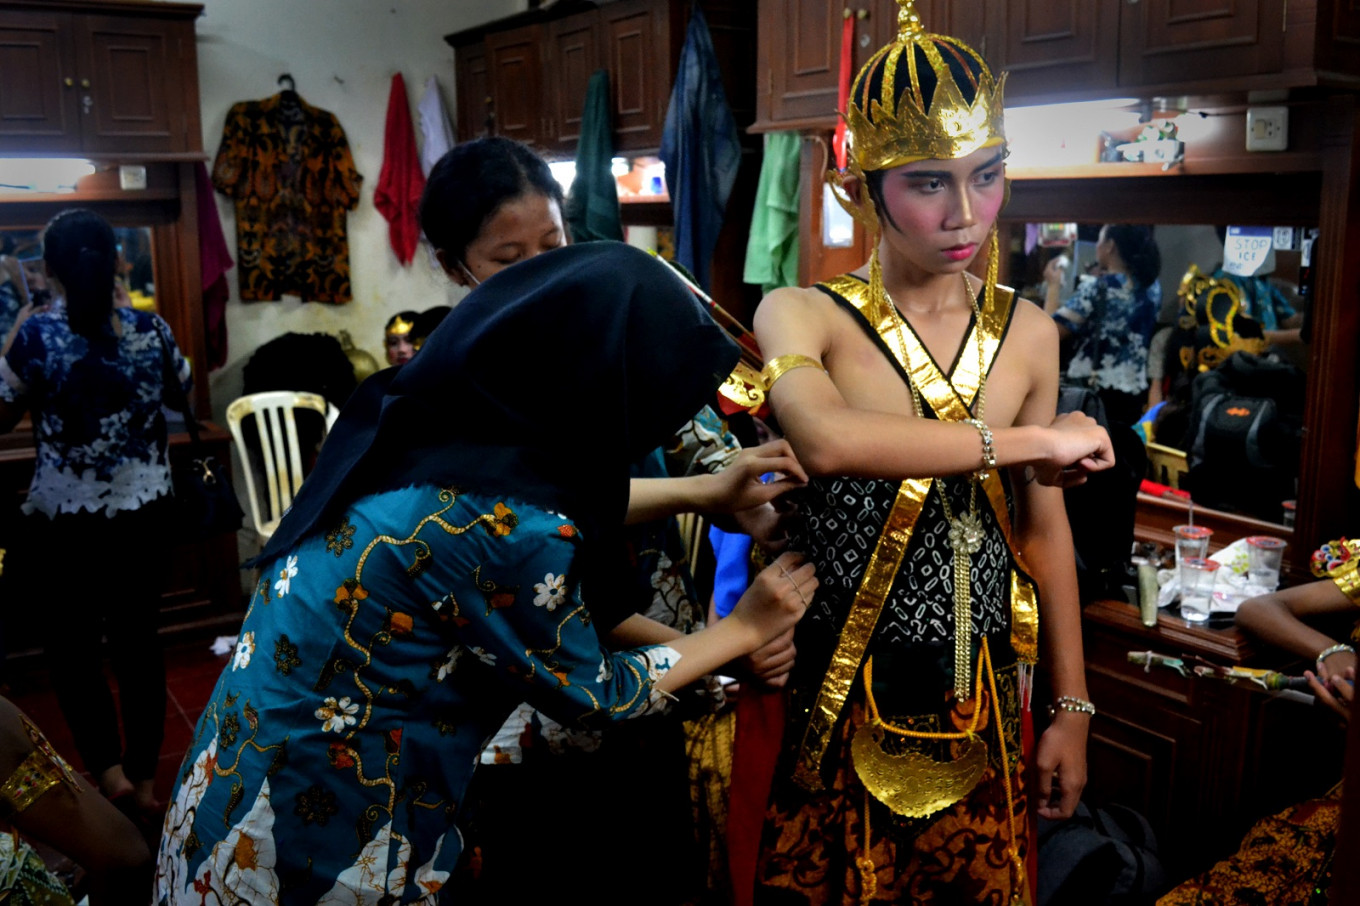 A student of SMPN 4 Surakarta junior high school is assisted with his 'wayang orang' costume backstage.